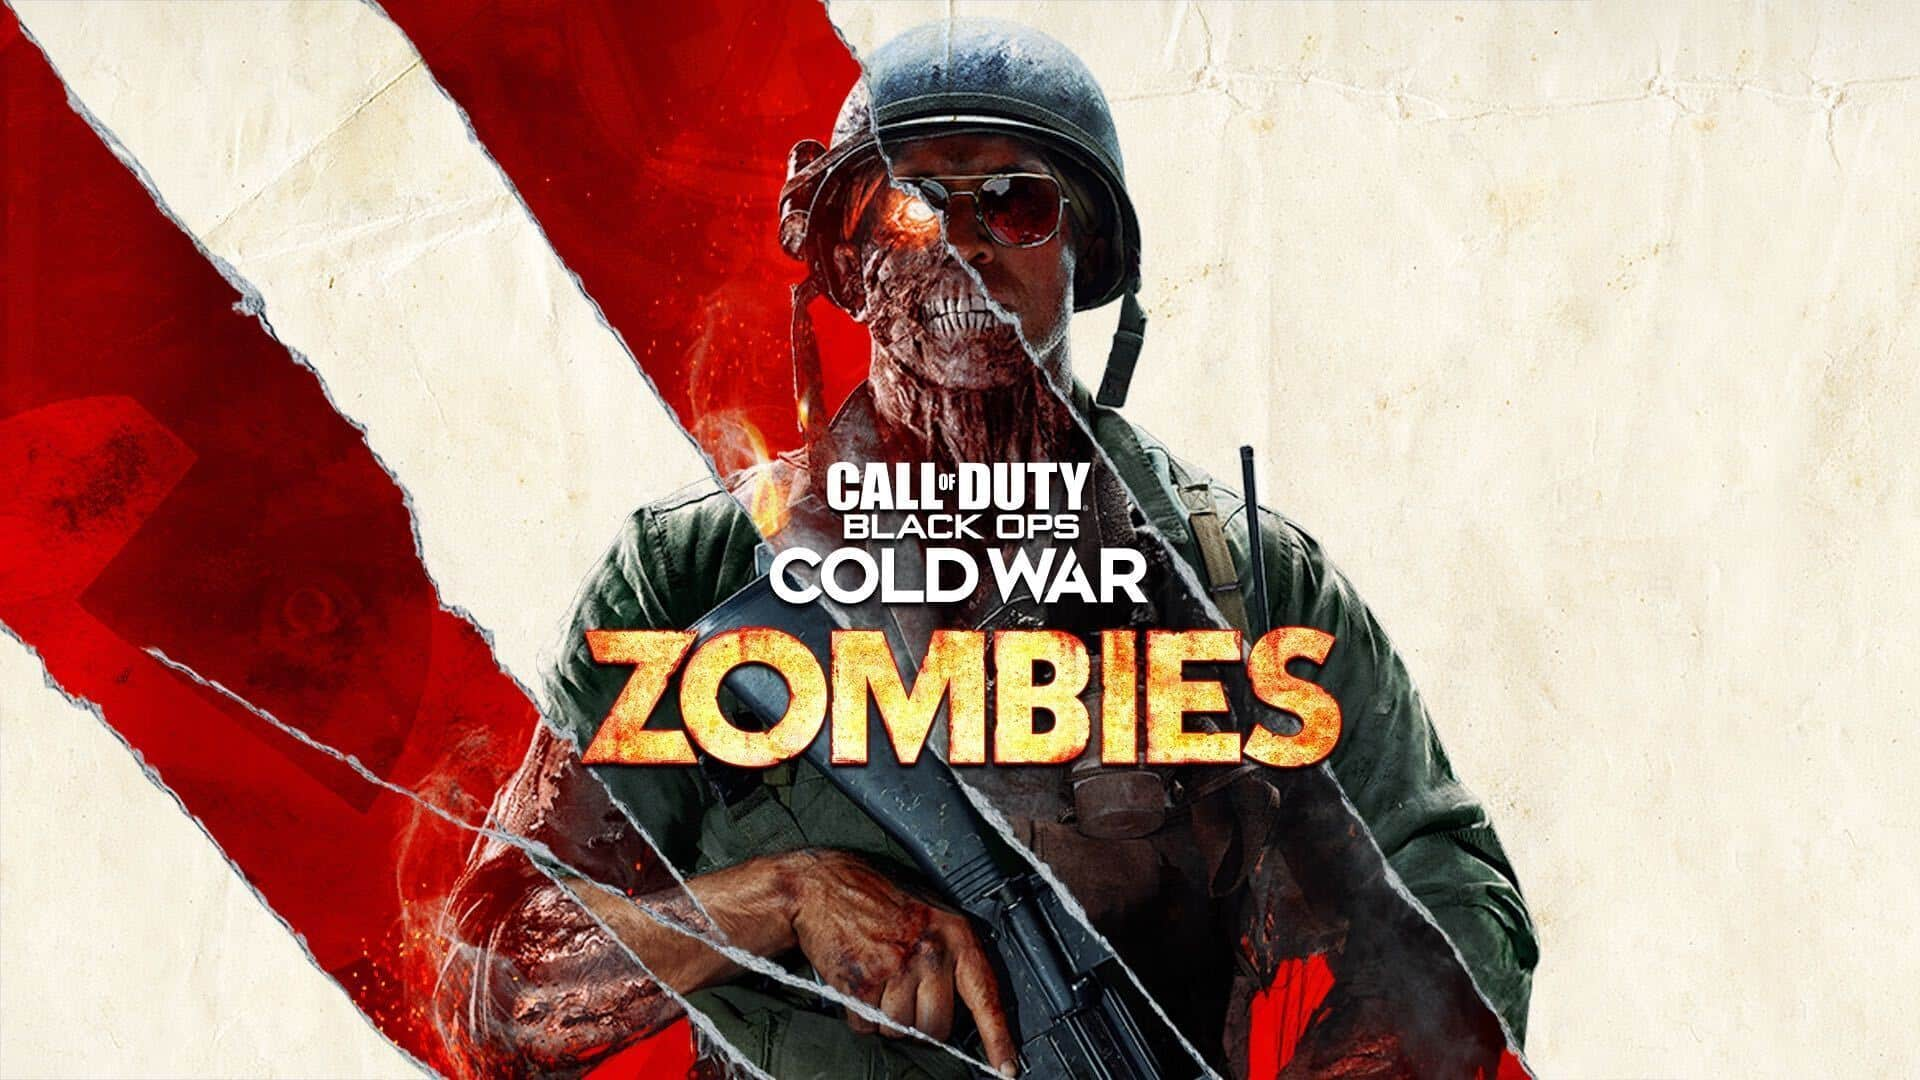 Black Ops Cold War Zombies to be revealed tomorrow